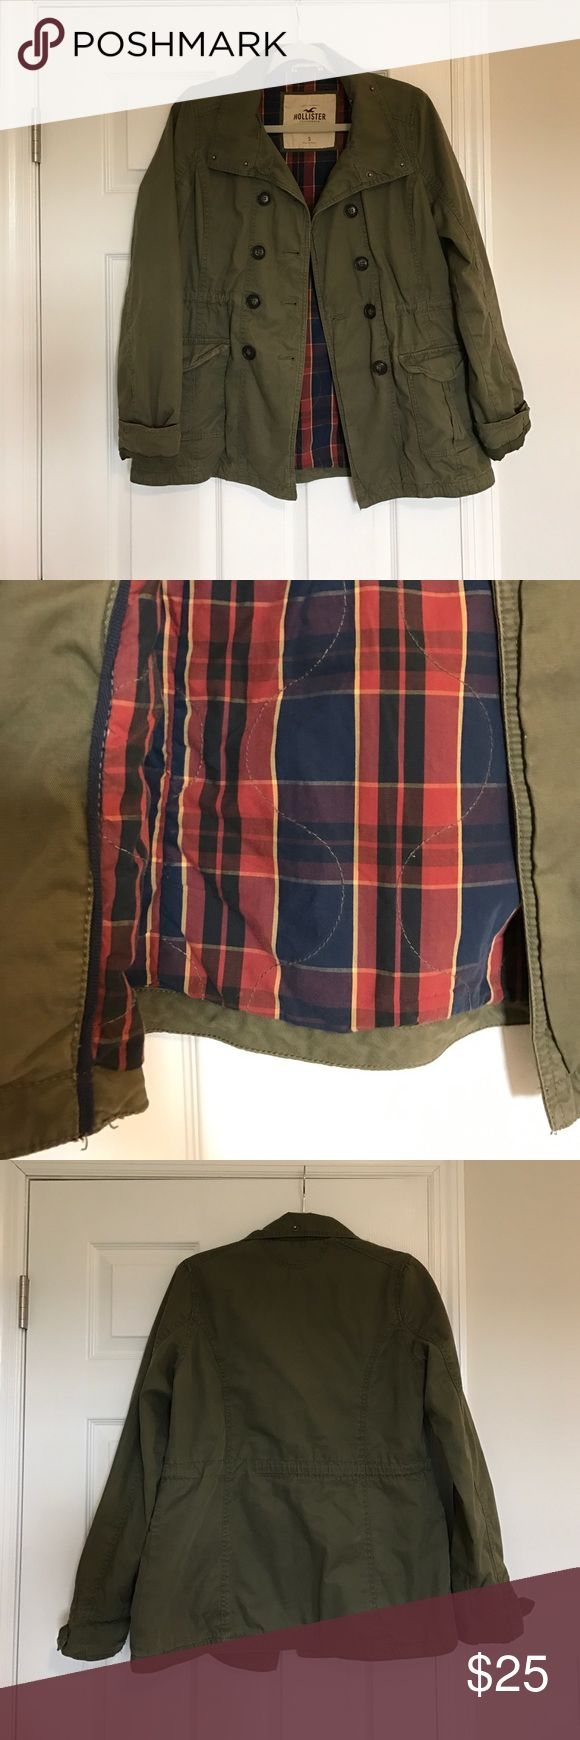 Hollister utility olive green jacket Hollister olive green jacket with a cute plaid design on the inner part of the jacket! Hollister Jackets & Coats Utility Jackets